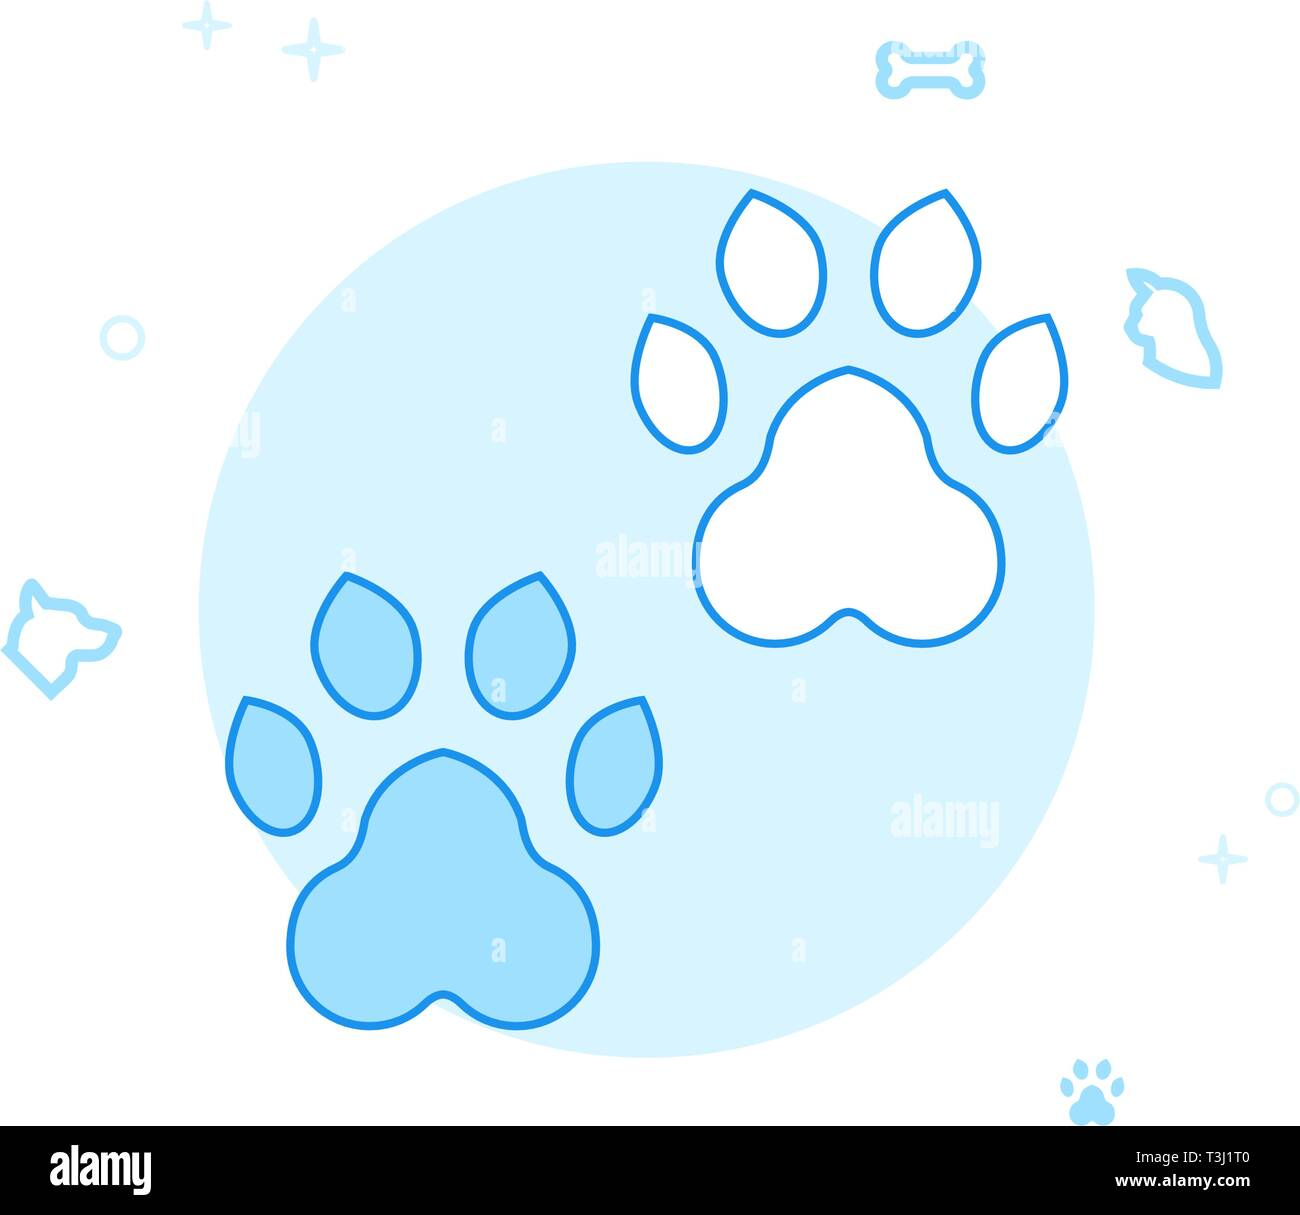 Animal Tracks, Footprints Flat Vector Icon. Pet and Pet Supply Illustration. Light Flat Style. Blue Monochrome Design. Editable Stroke. Adjust Line We - Stock Image